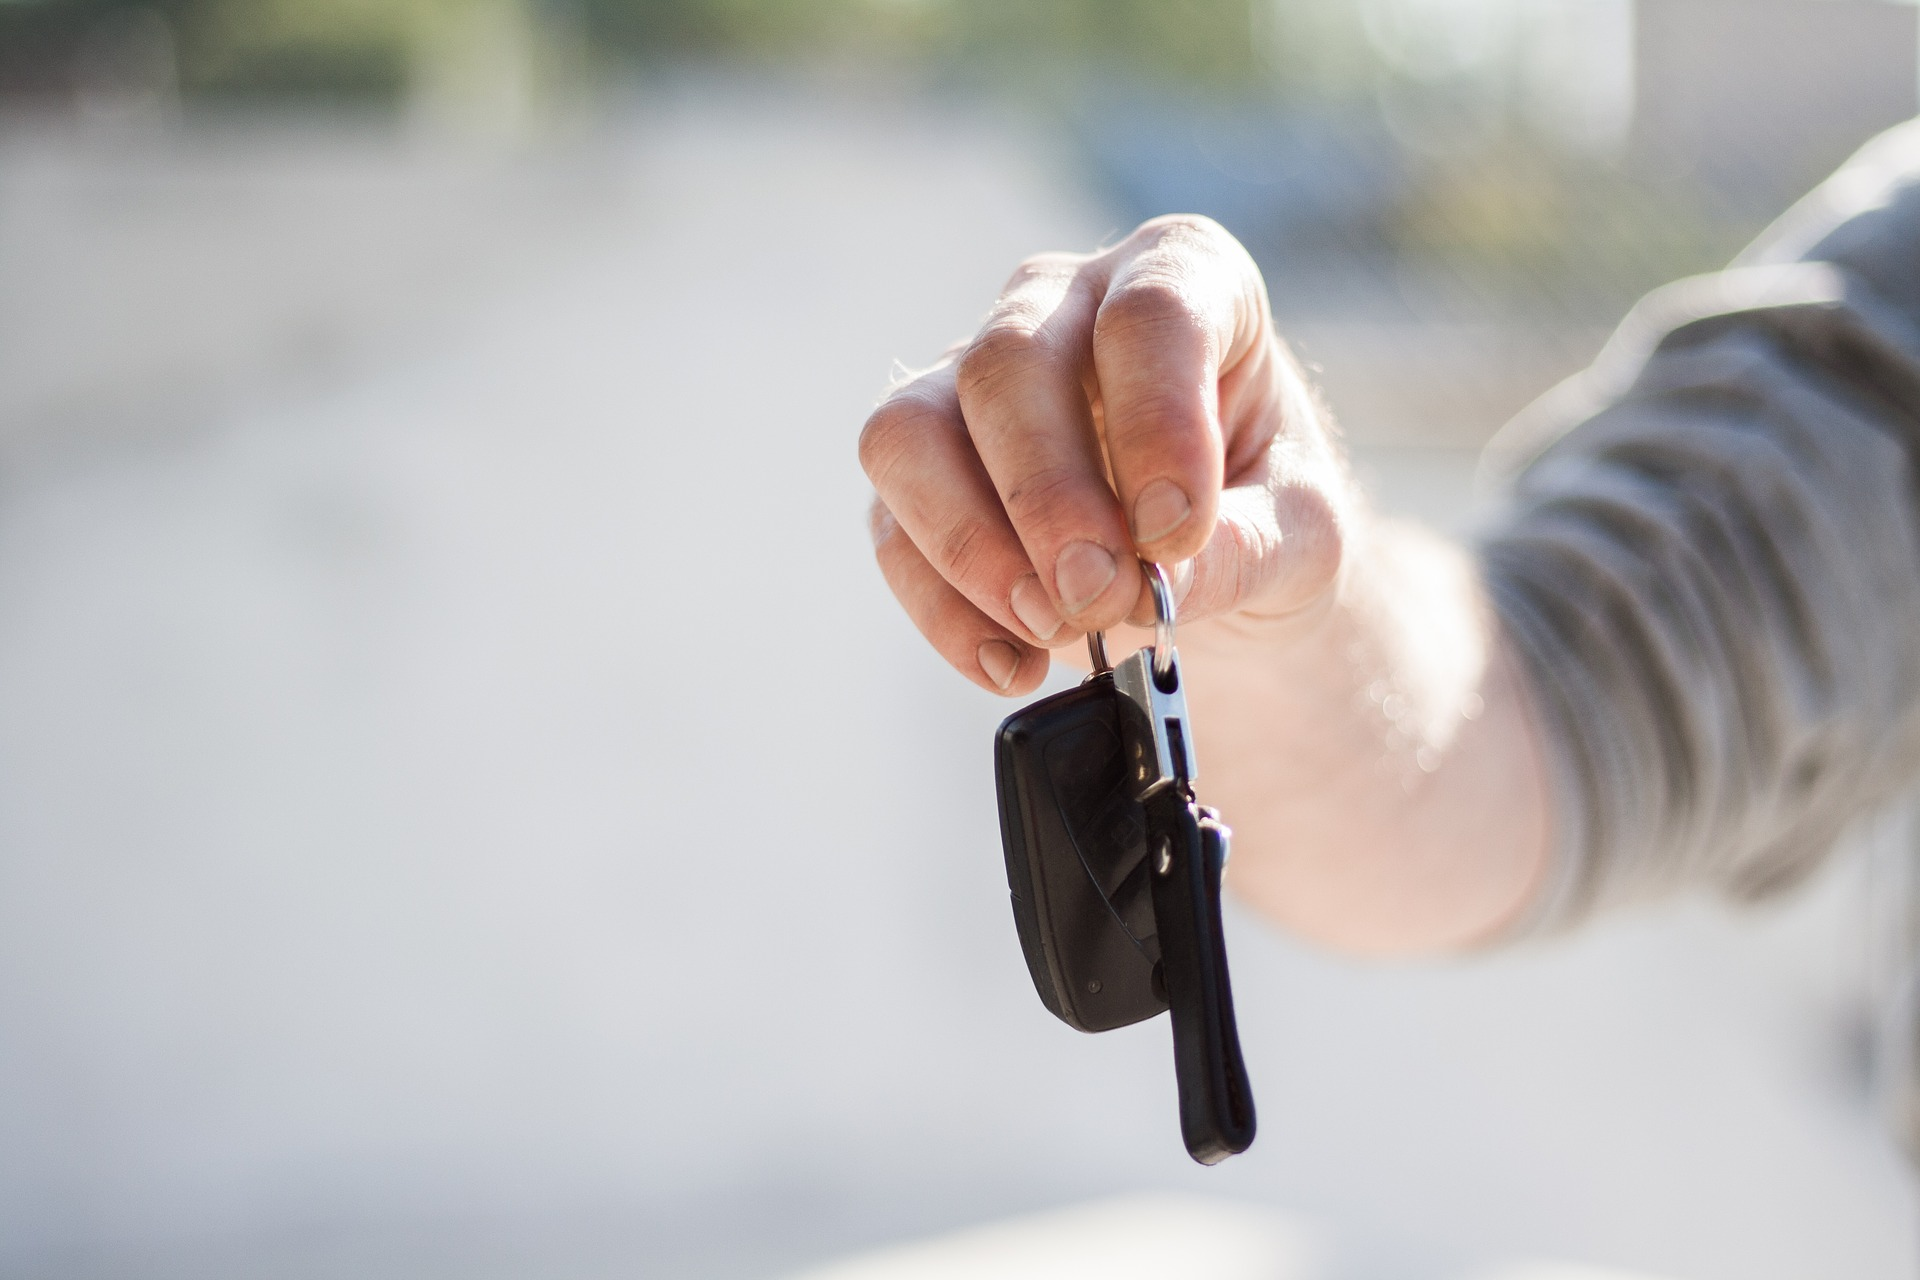 Why choose Mirolocks – Mobile Auto Locksmith South London to get replacement car keys?